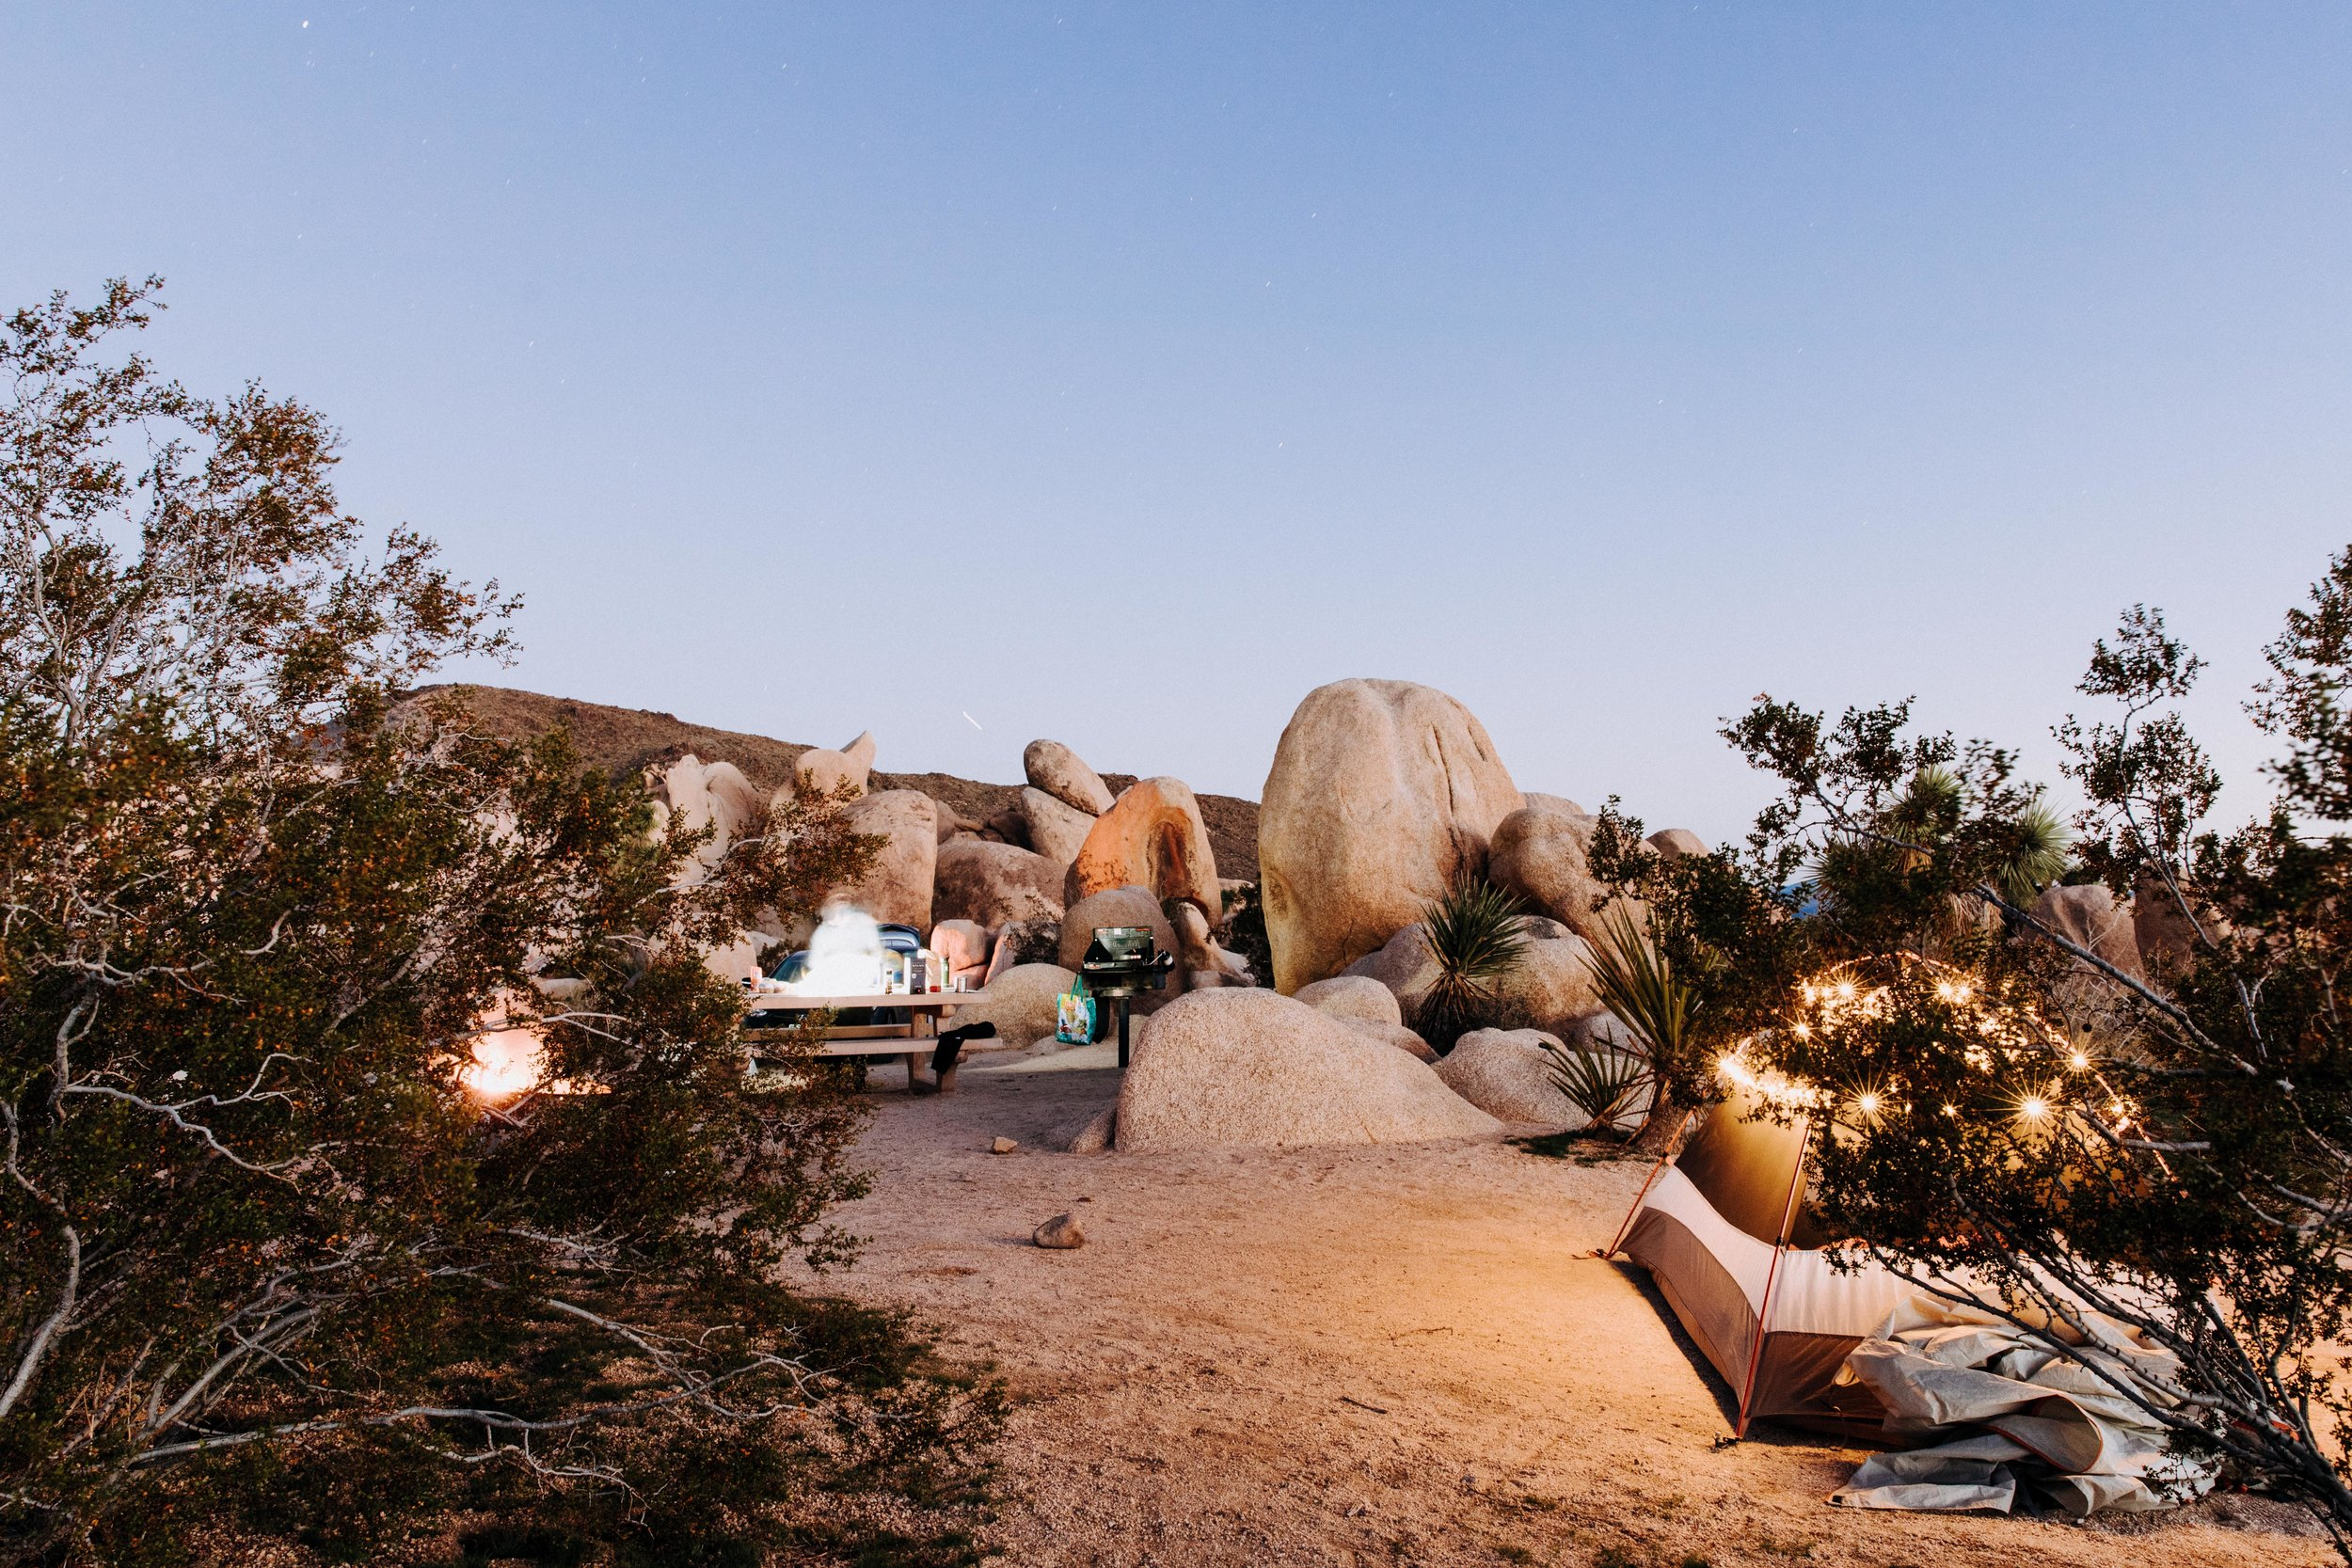 Joshua Tree National Park Visitor Guide